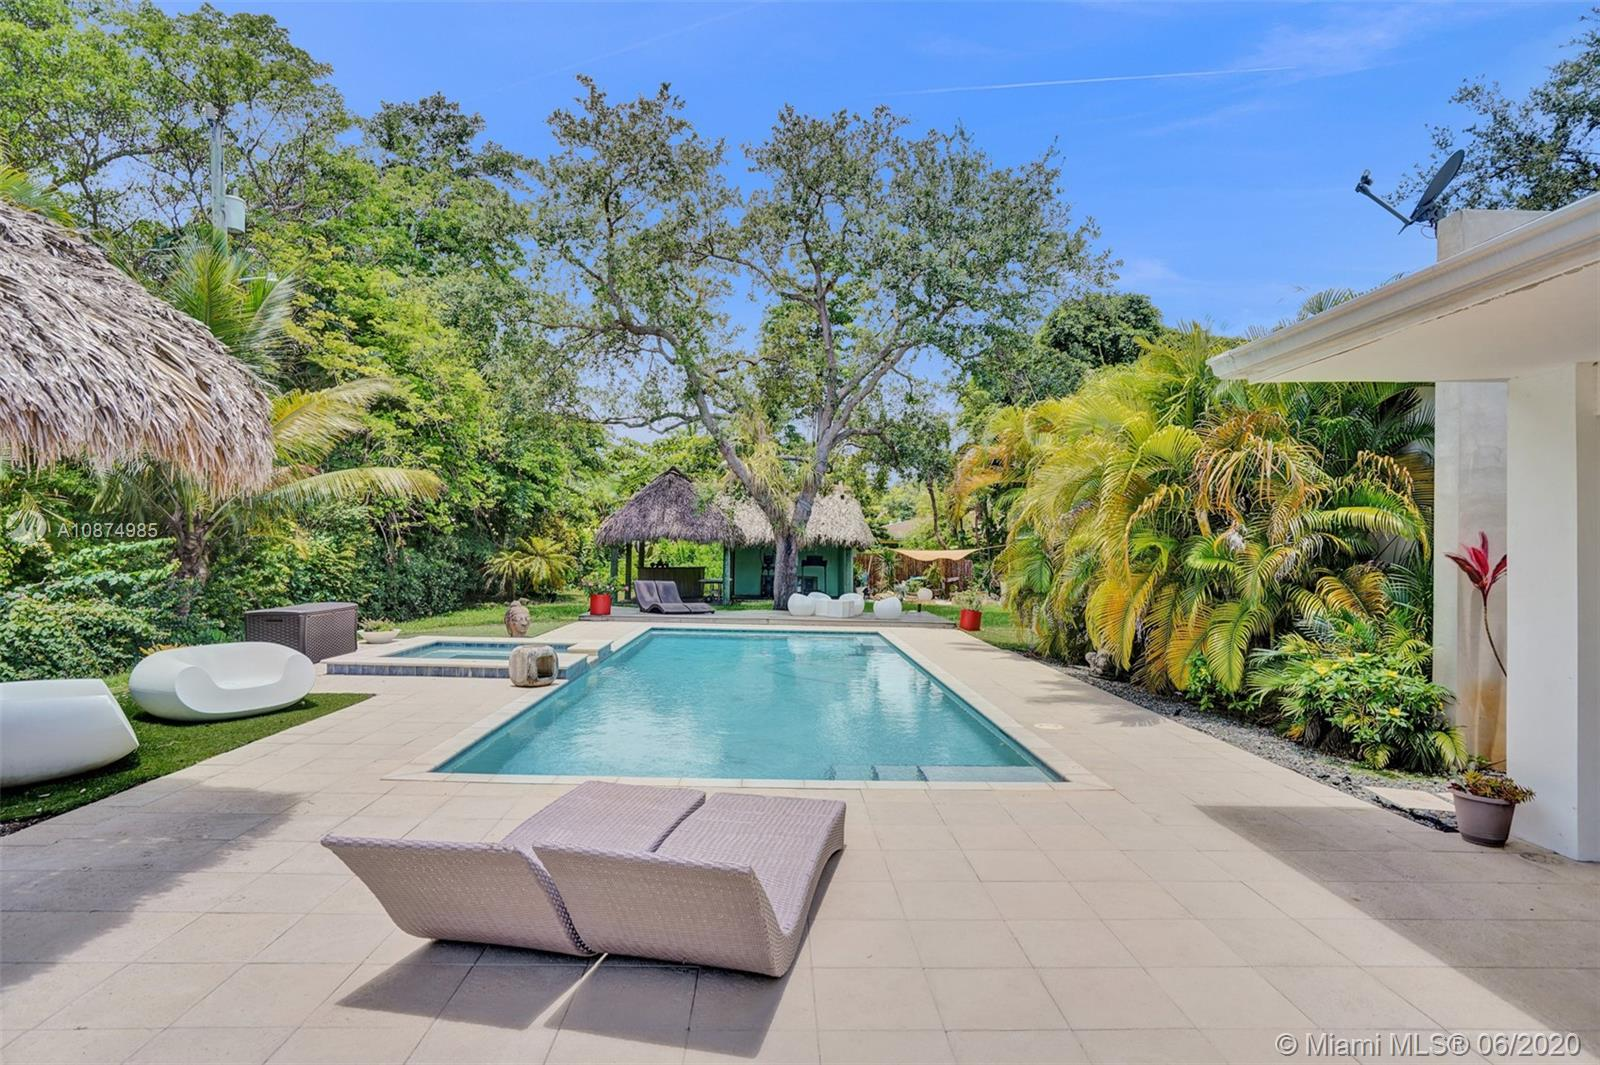 6900 SW 104th St, Pinecrest, Florida 33156, 6 Bedrooms Bedrooms, ,5 BathroomsBathrooms,Residential,For Sale,6900 SW 104th St,A10874985